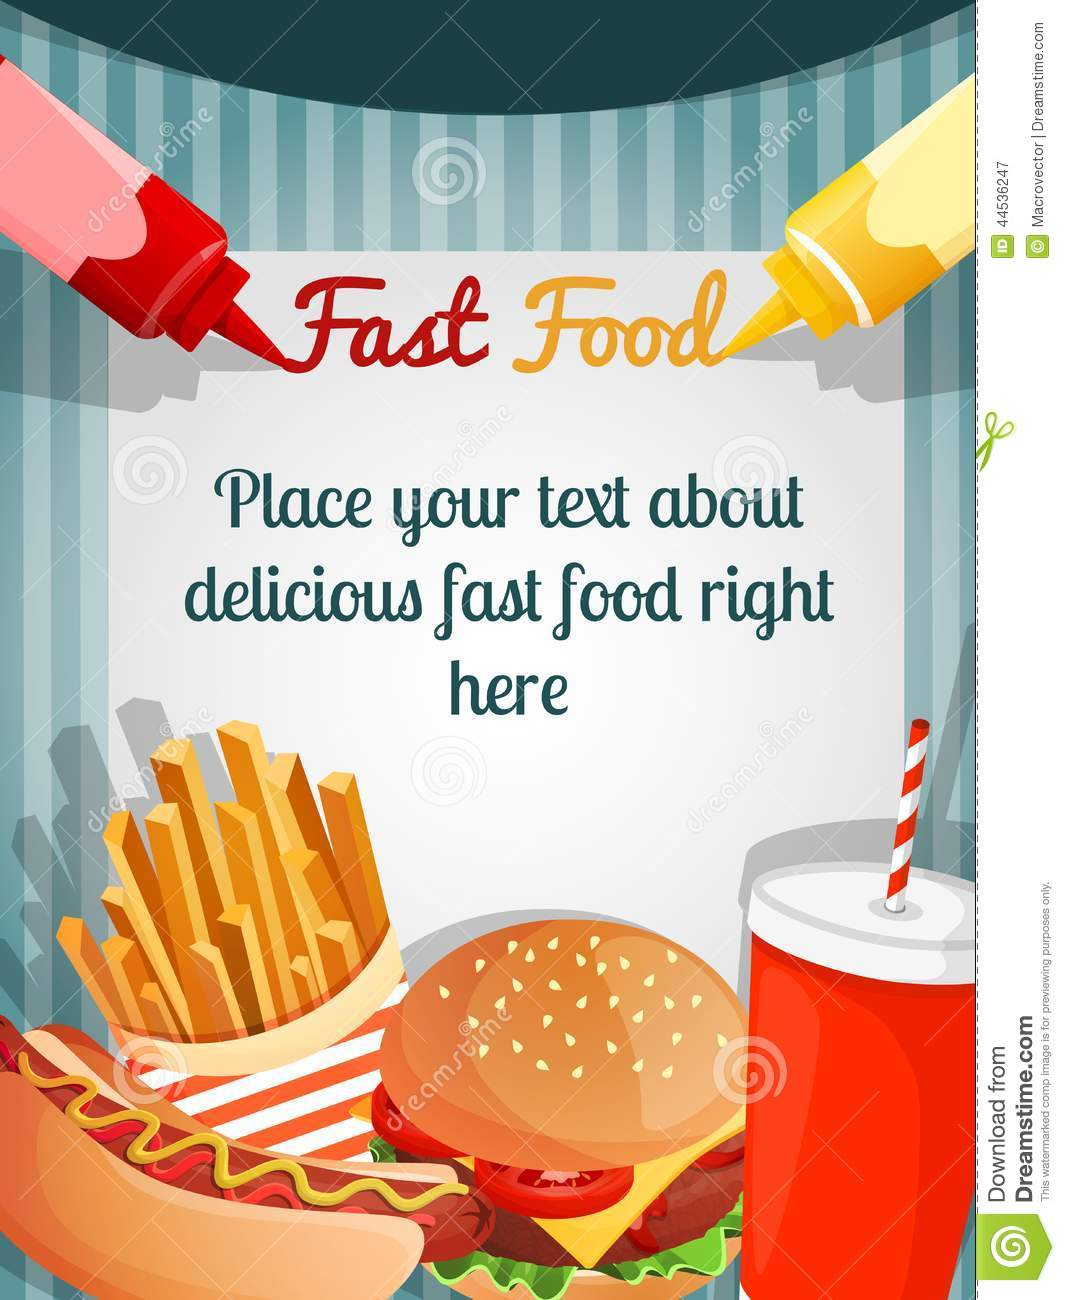 overview and background of the fast food industry Food & beverage: background the food and beverage industry includes restaurants, bars, caterers, soft drink and juice companies, and candy manufacturers well-known companies such as mcdonalds, coca-cola and pepsico all belong to this industry.